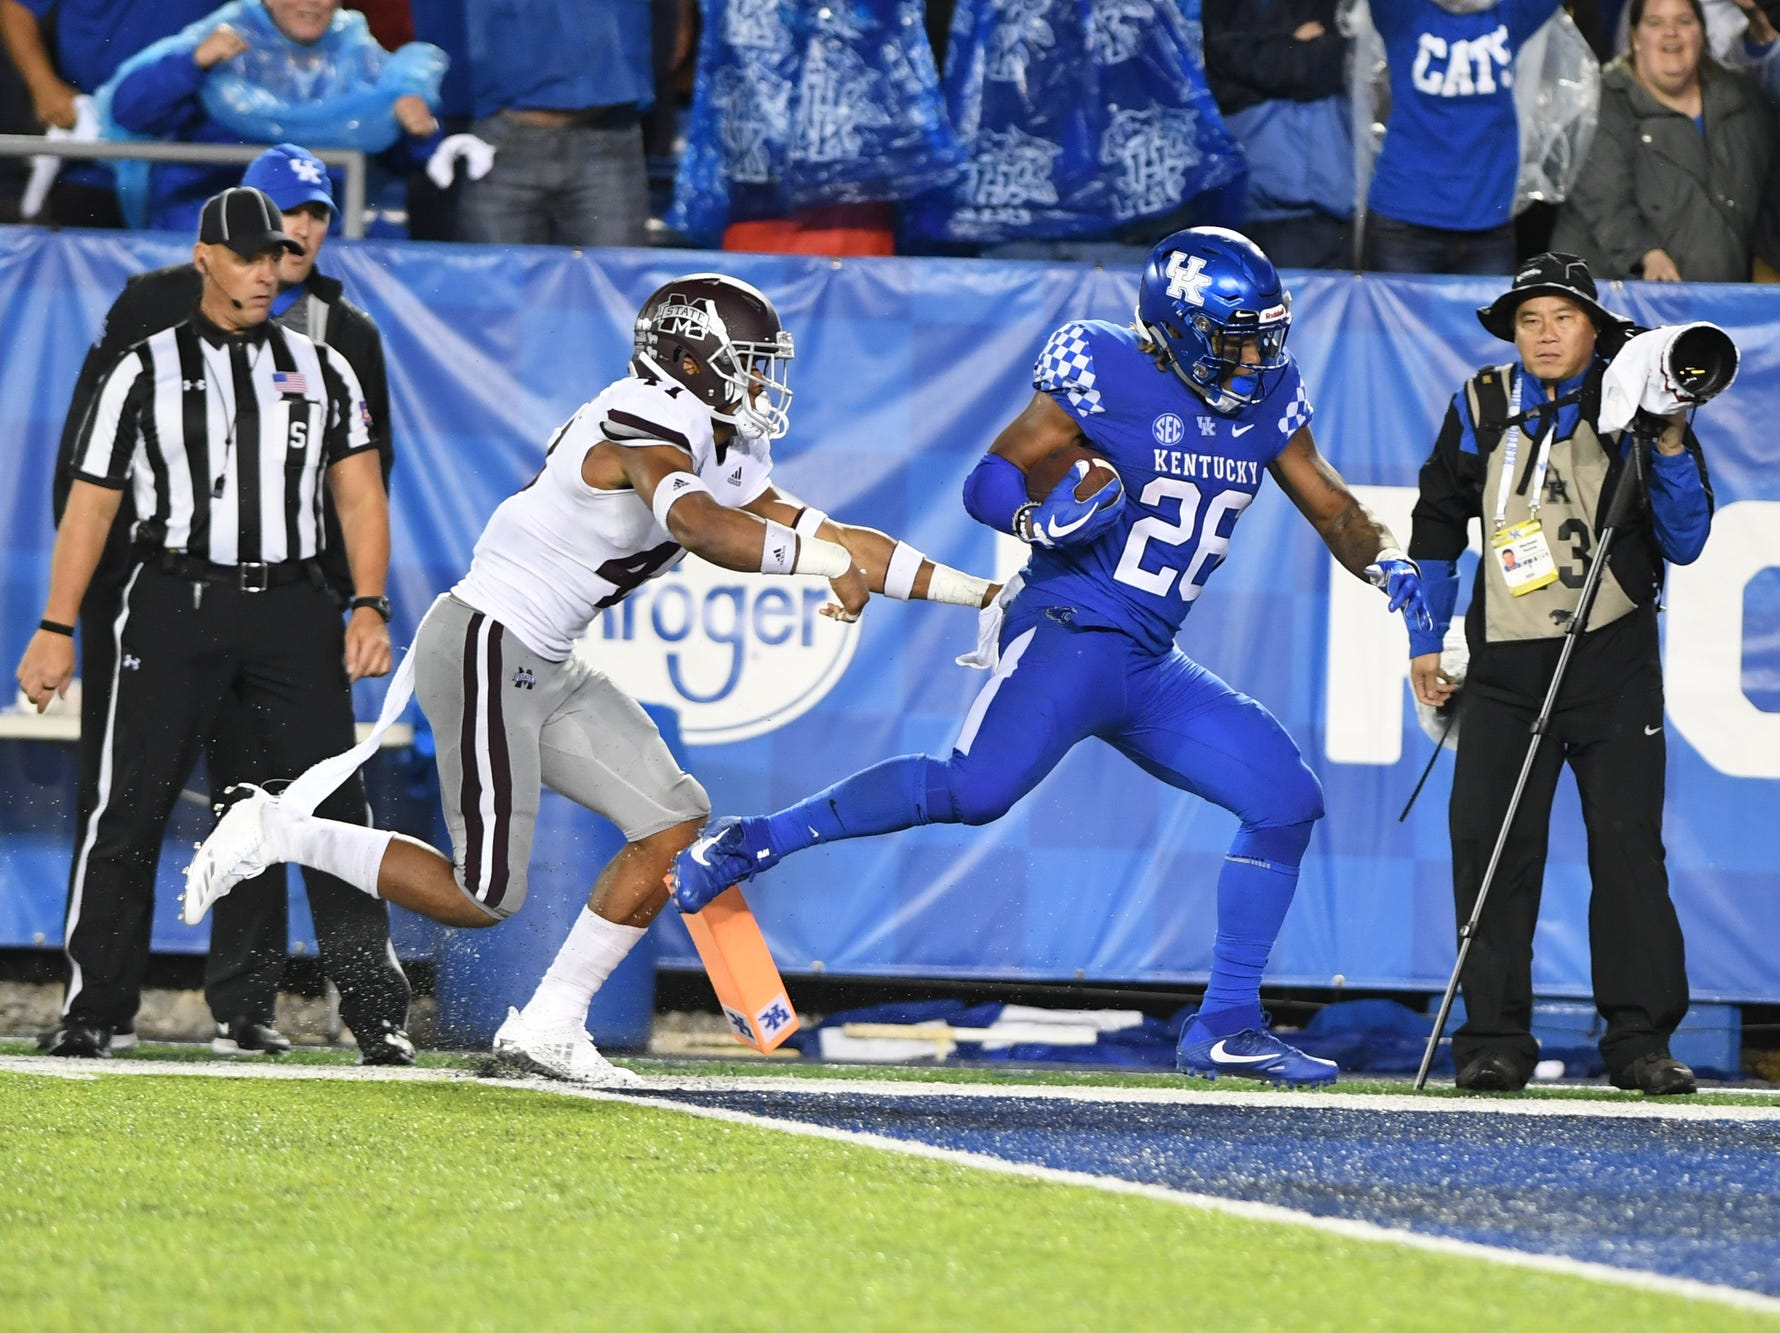 UK RB Benny Snell, Jr. scores a touchdown during the University of Kentucky football game against Mississippi State at Kroger Field in Lexington, Kentucky on Saturday, September 22, 2018.